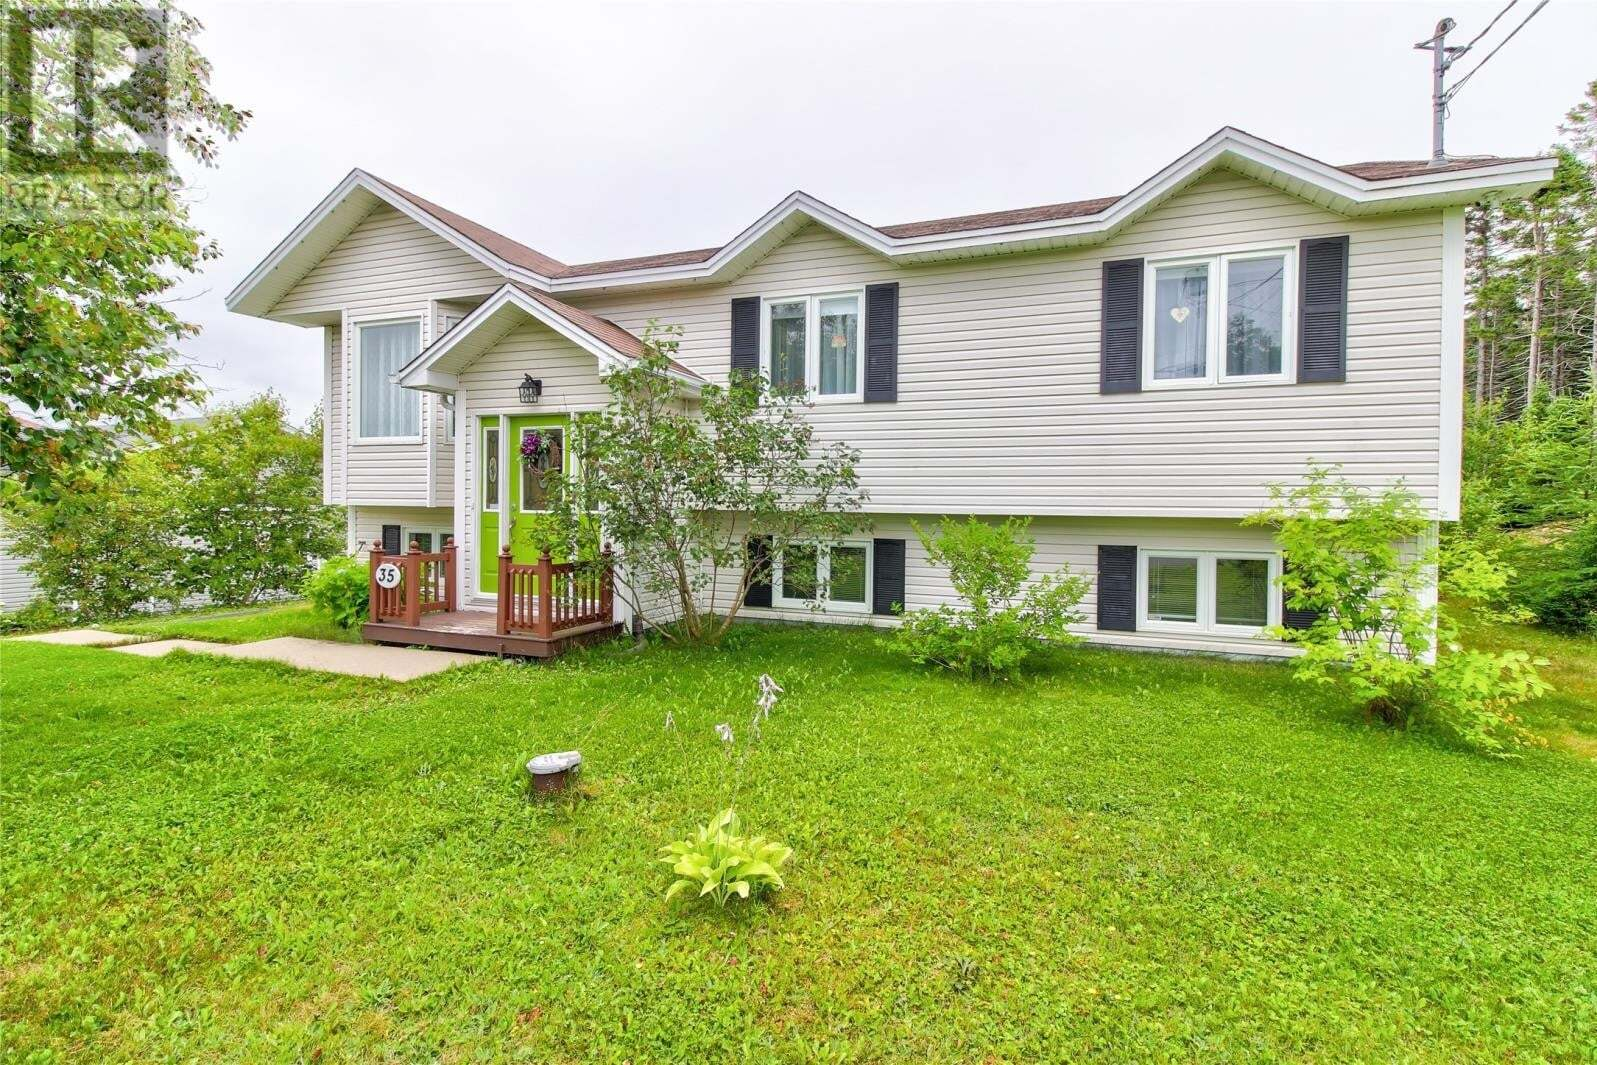 House for sale at 35 Emma's Pl Conception Bay South Newfoundland - MLS: 1218700